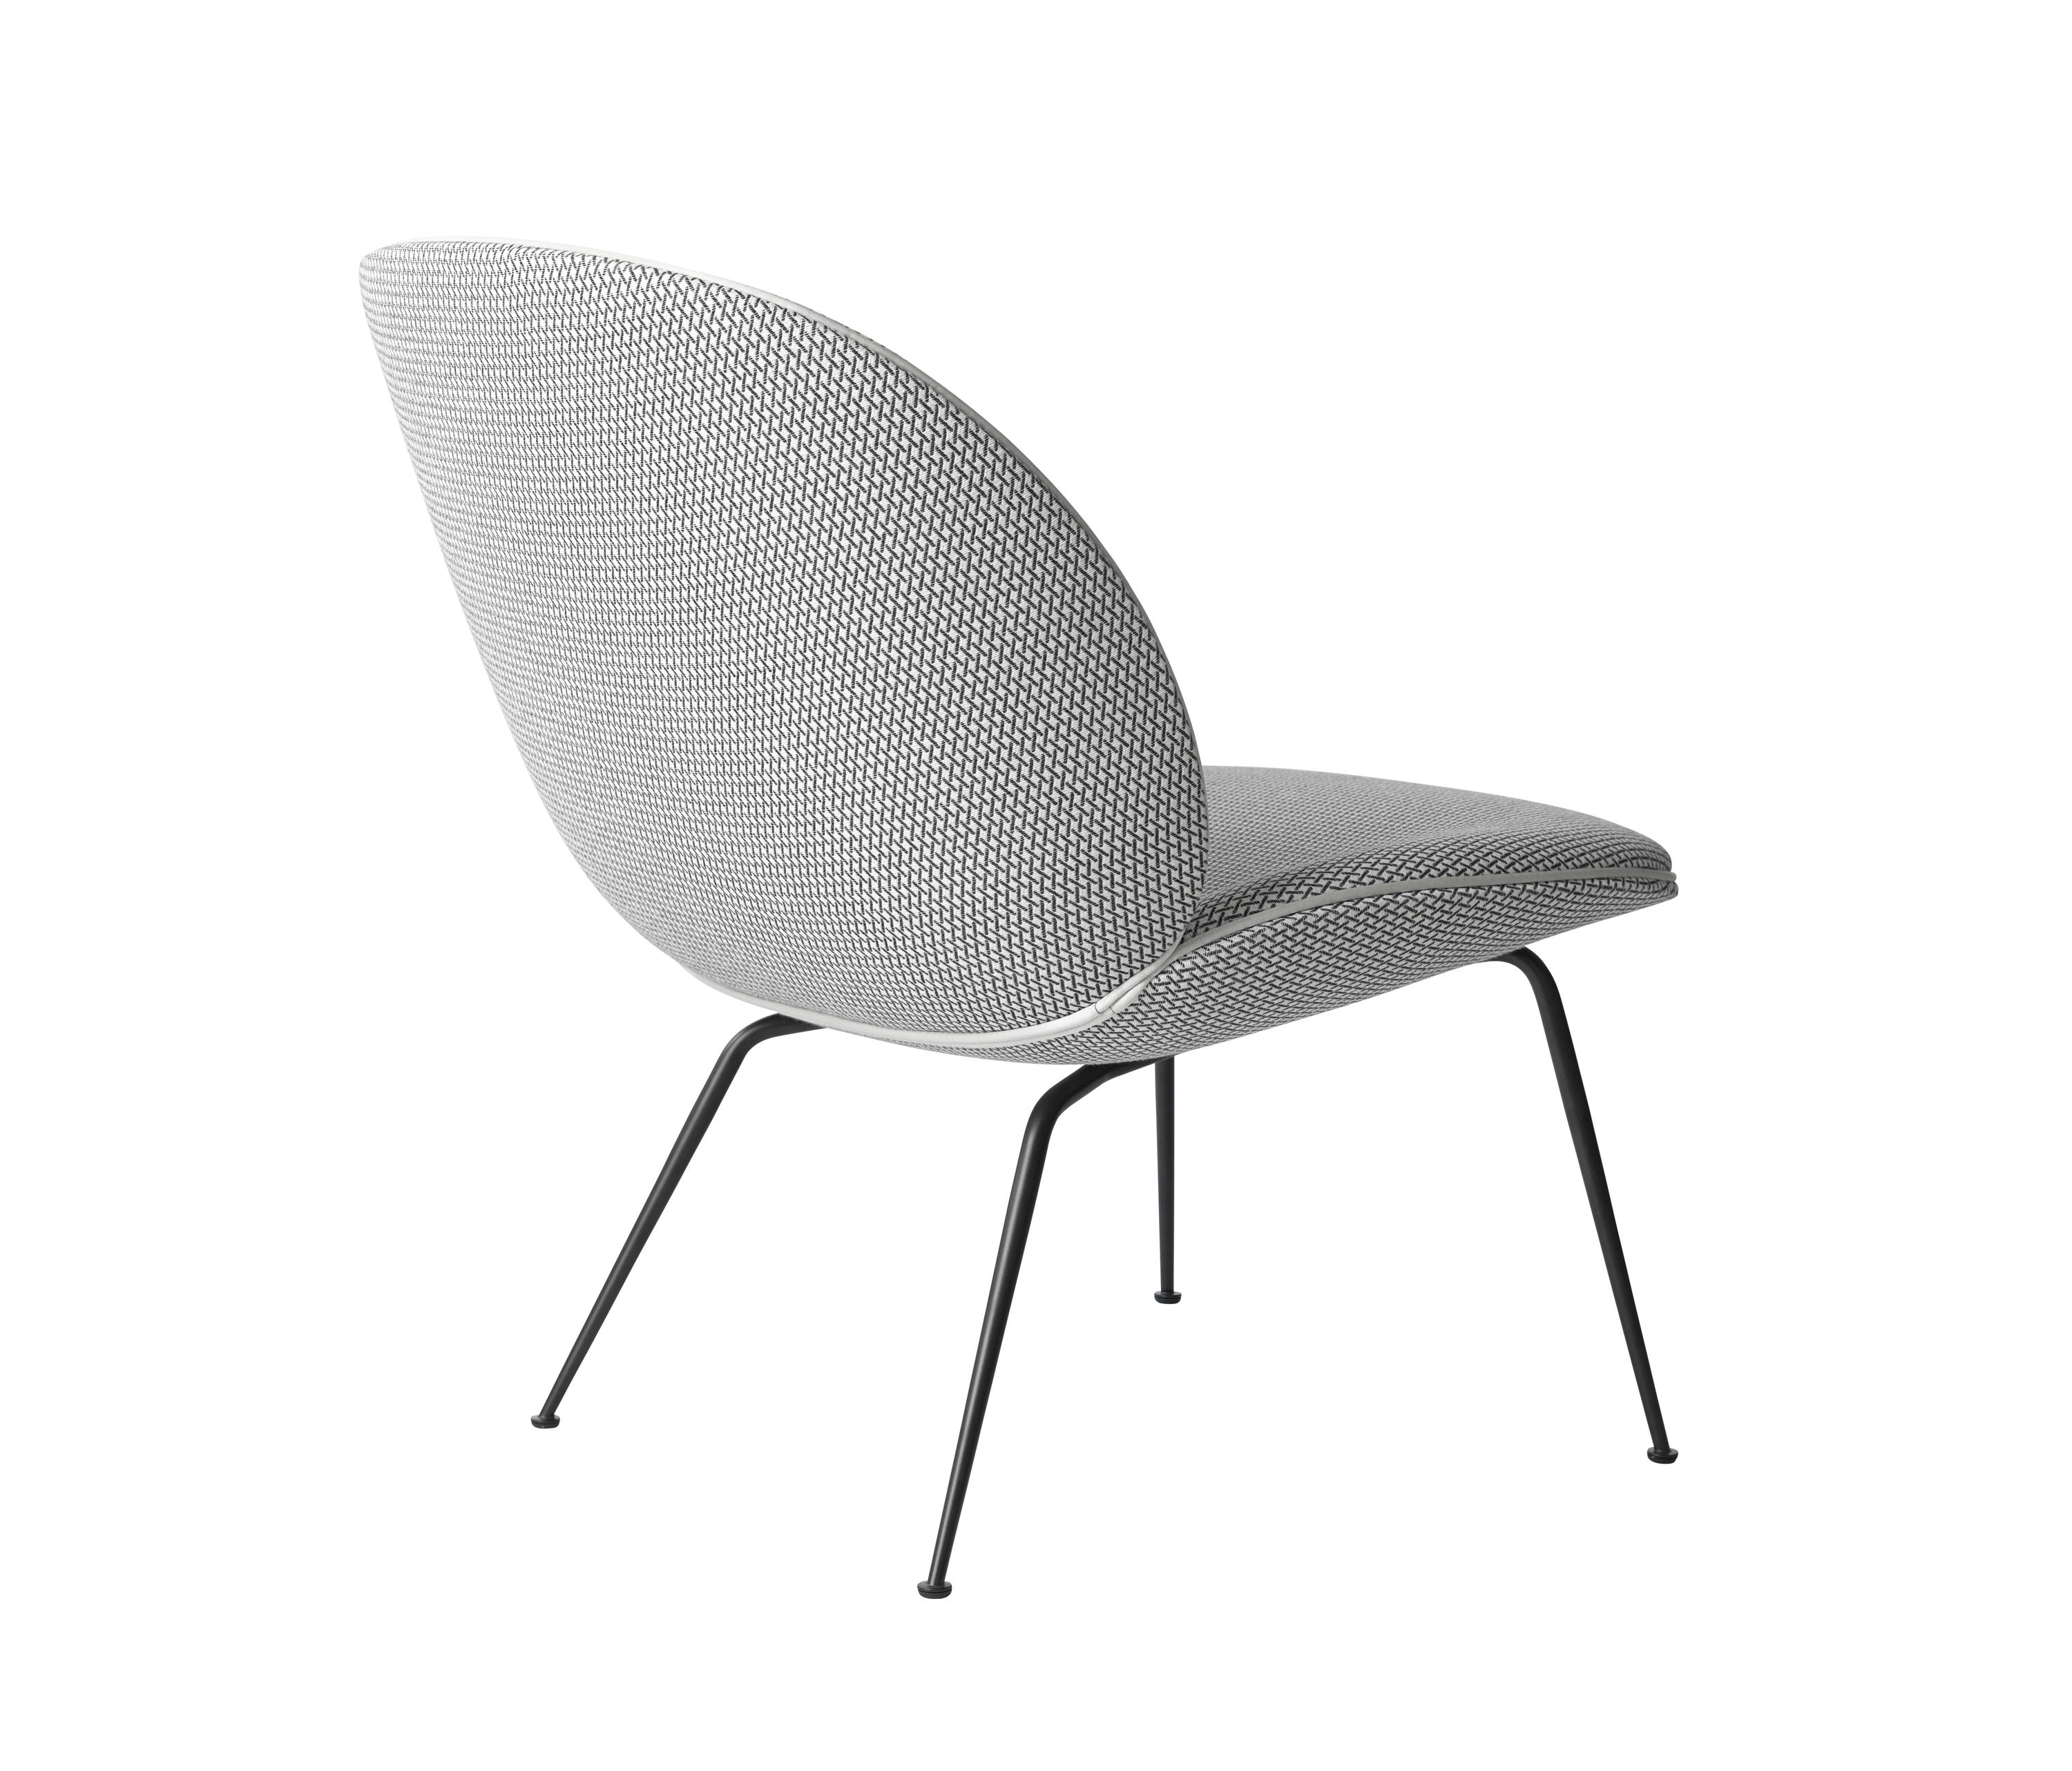 beetle lounge chair armchairs from gubi architonic. Black Bedroom Furniture Sets. Home Design Ideas